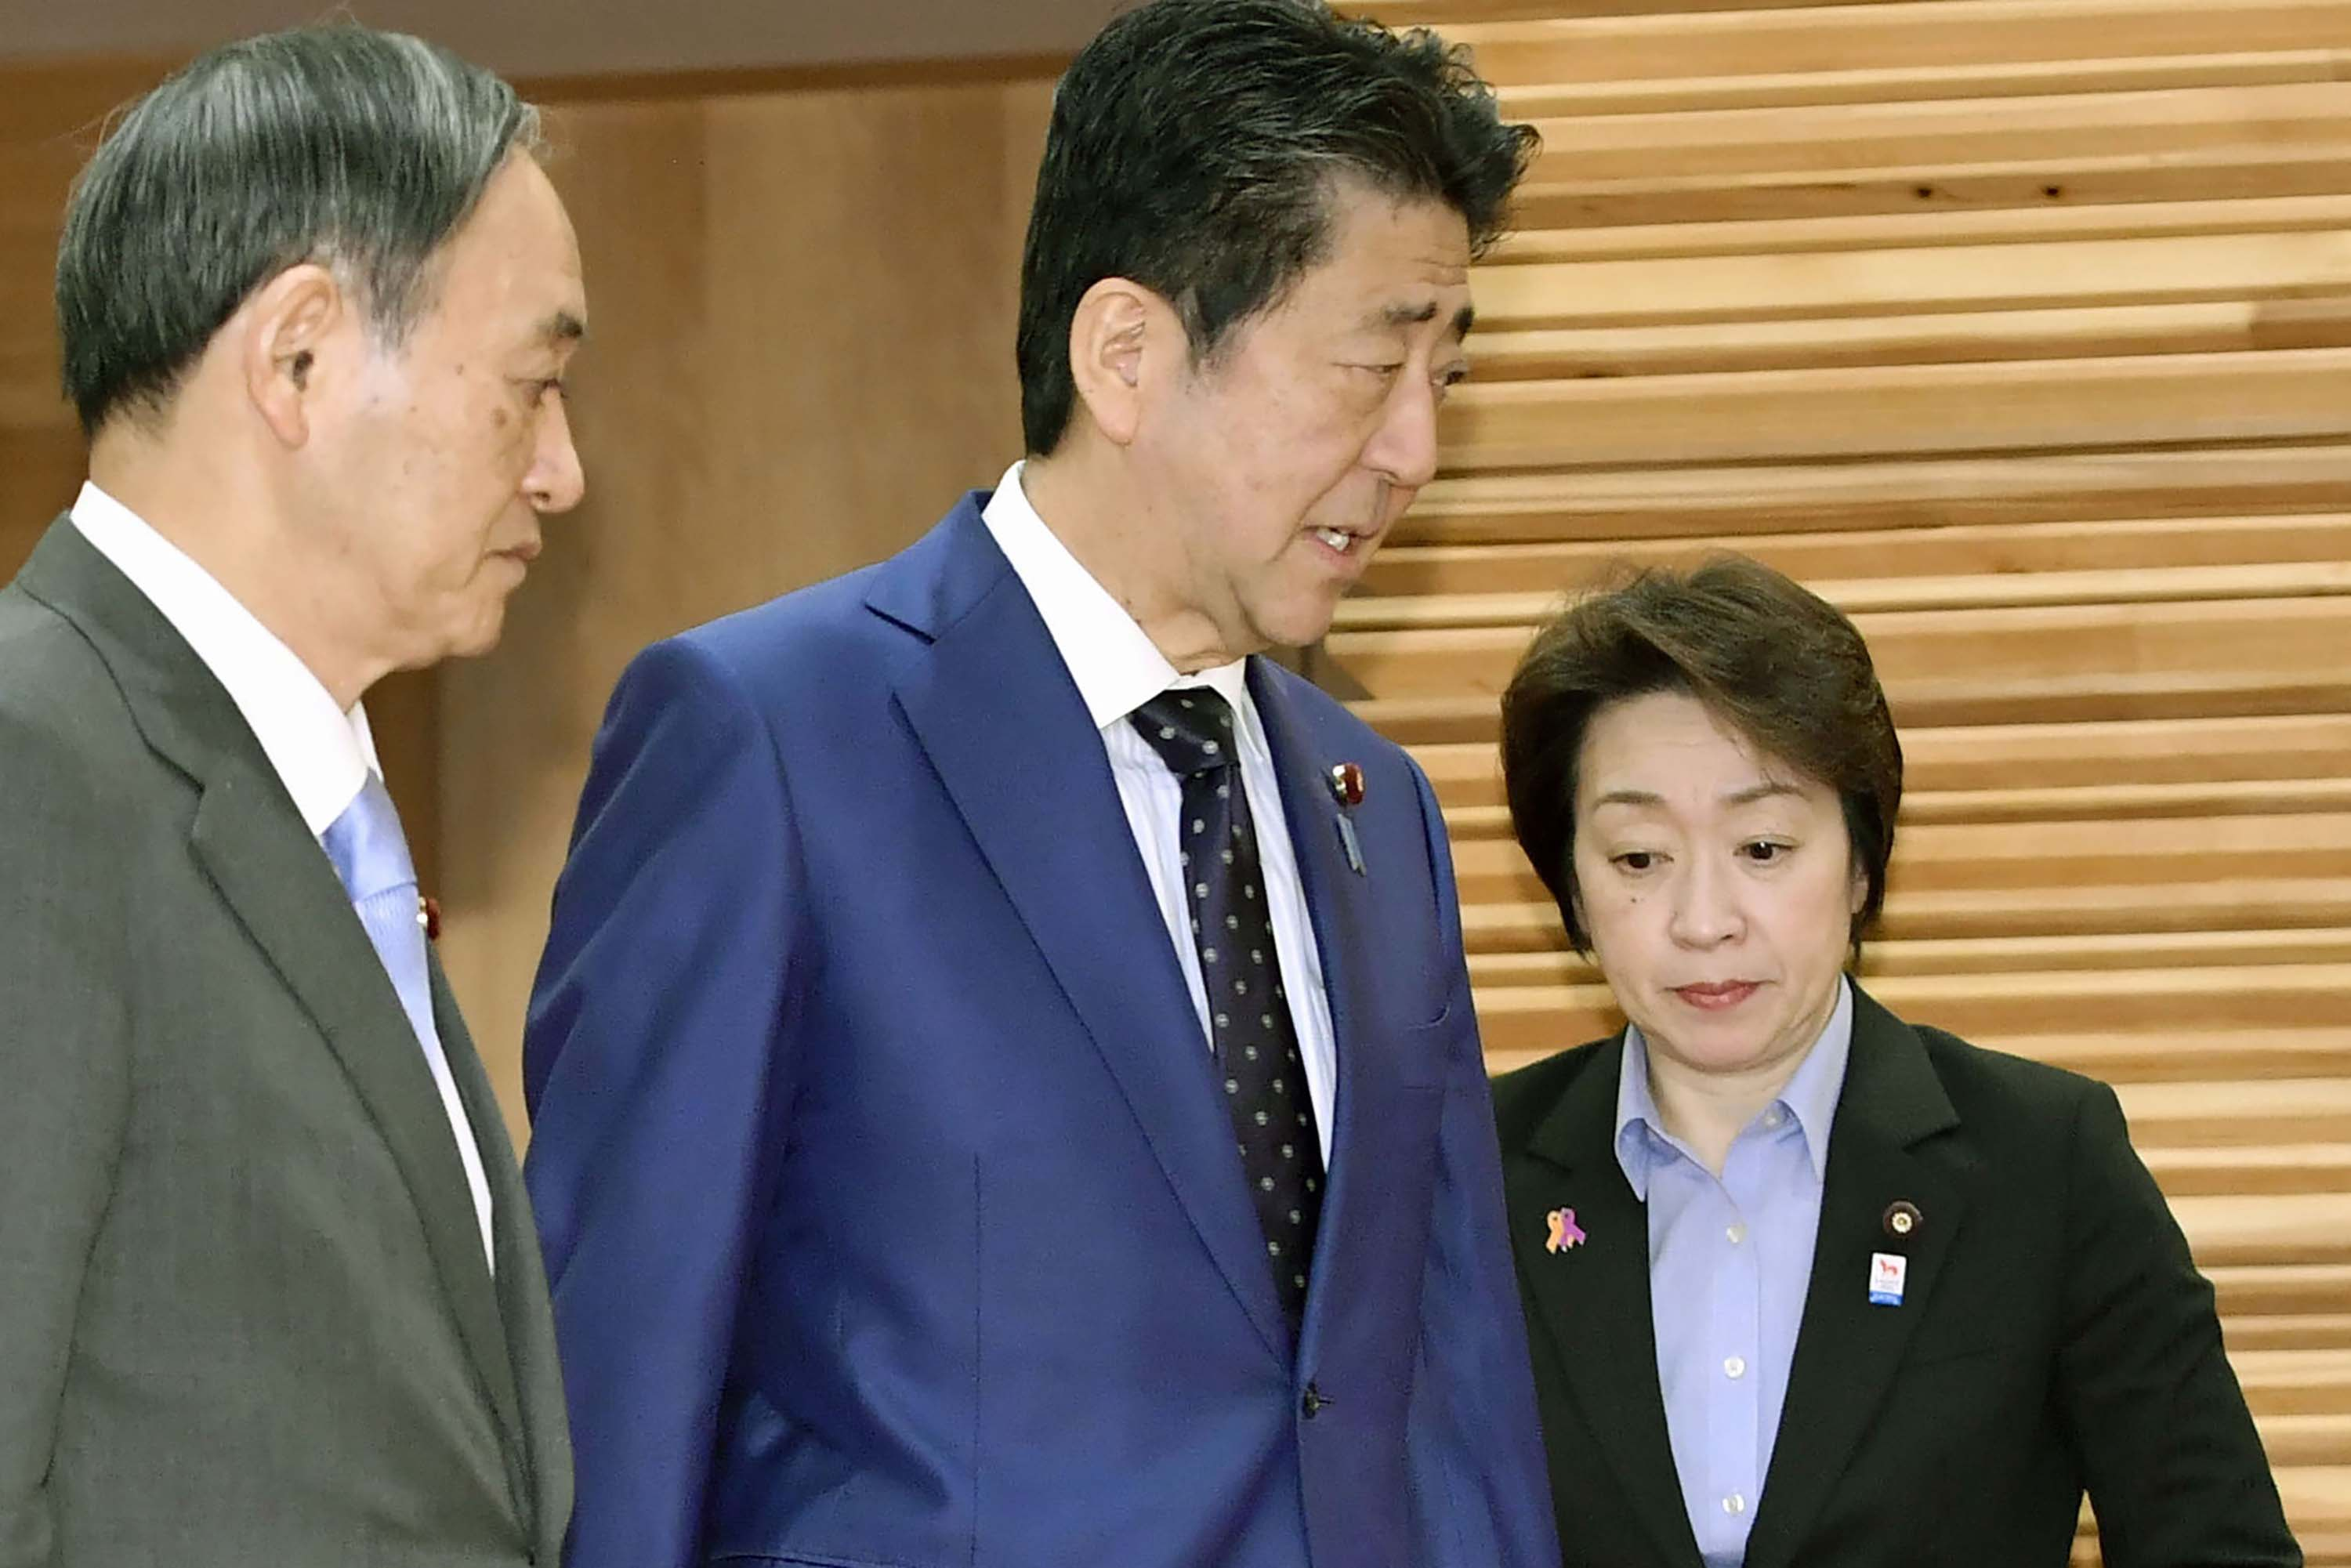 Japanese Prime Minister Shinzo Abe, center, walks past Olympic Minister Seiko Hashimoto, right, to attend a cabinet meeting at his official residence in Tokyo on Tuesday, March 24.